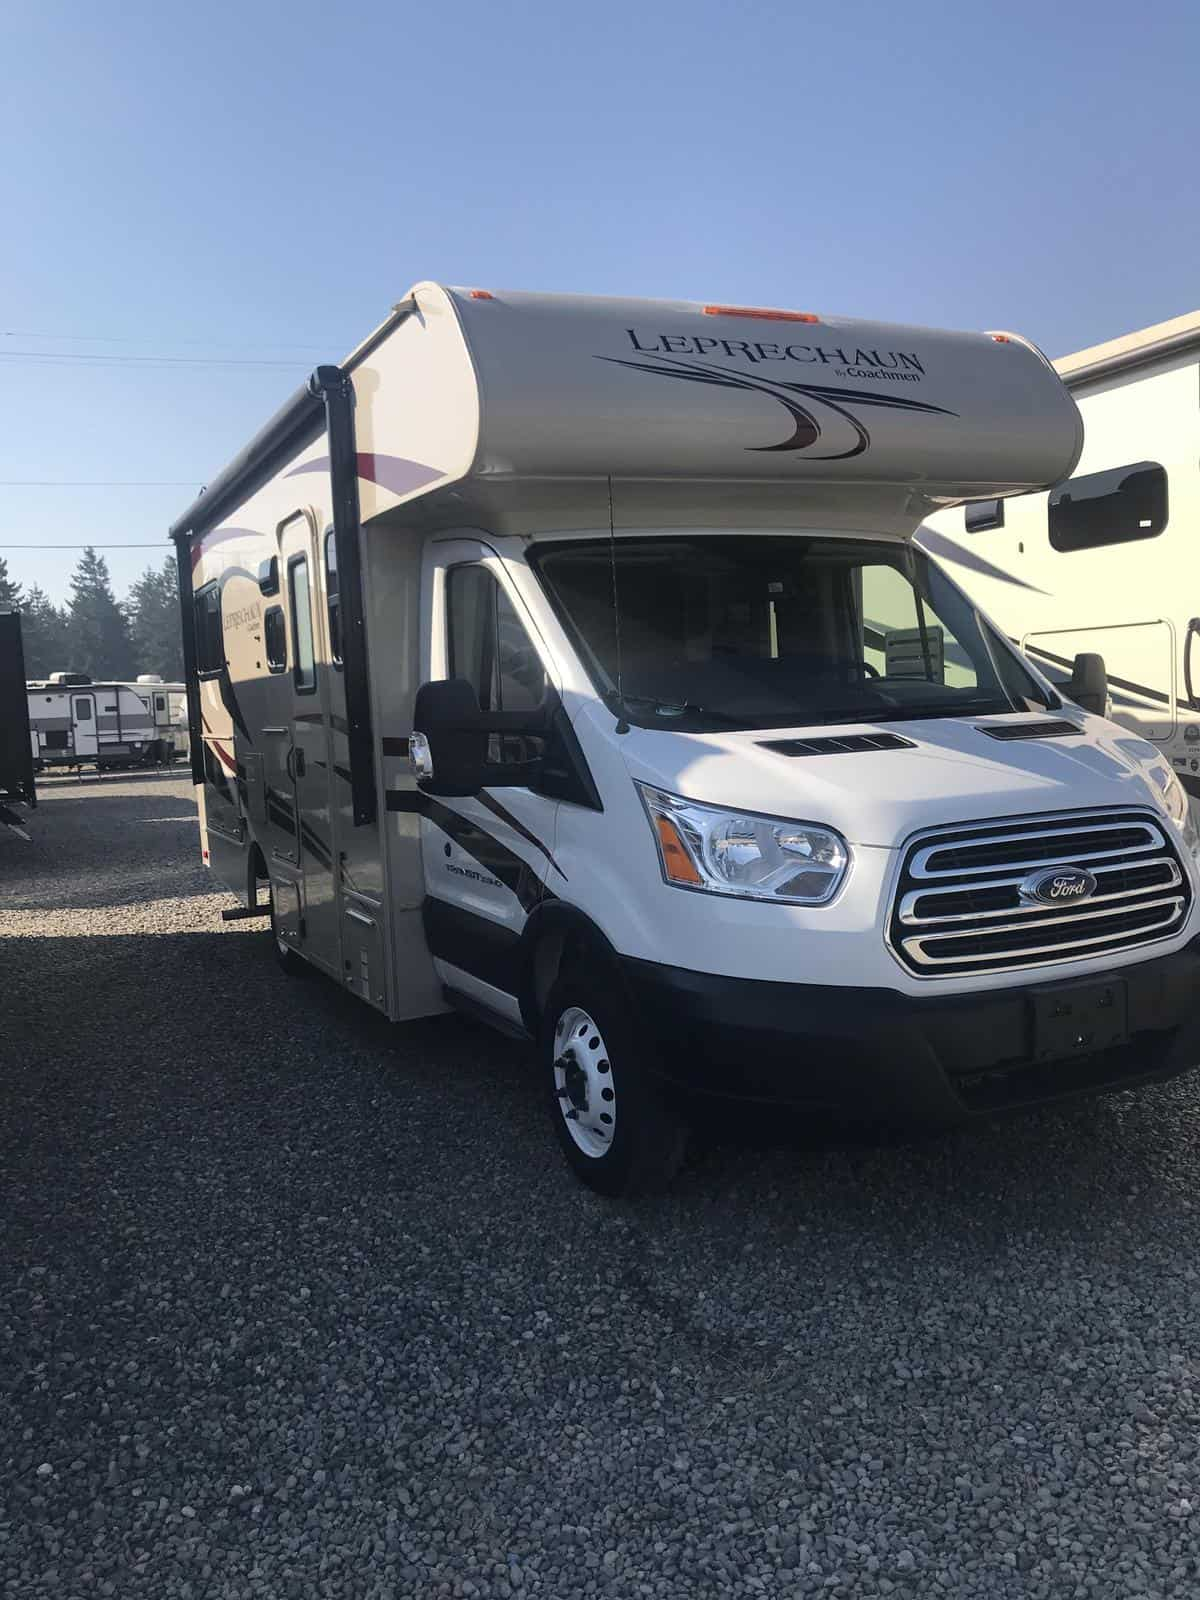 USED 2020 Coachmen Leprechaun 200CBT